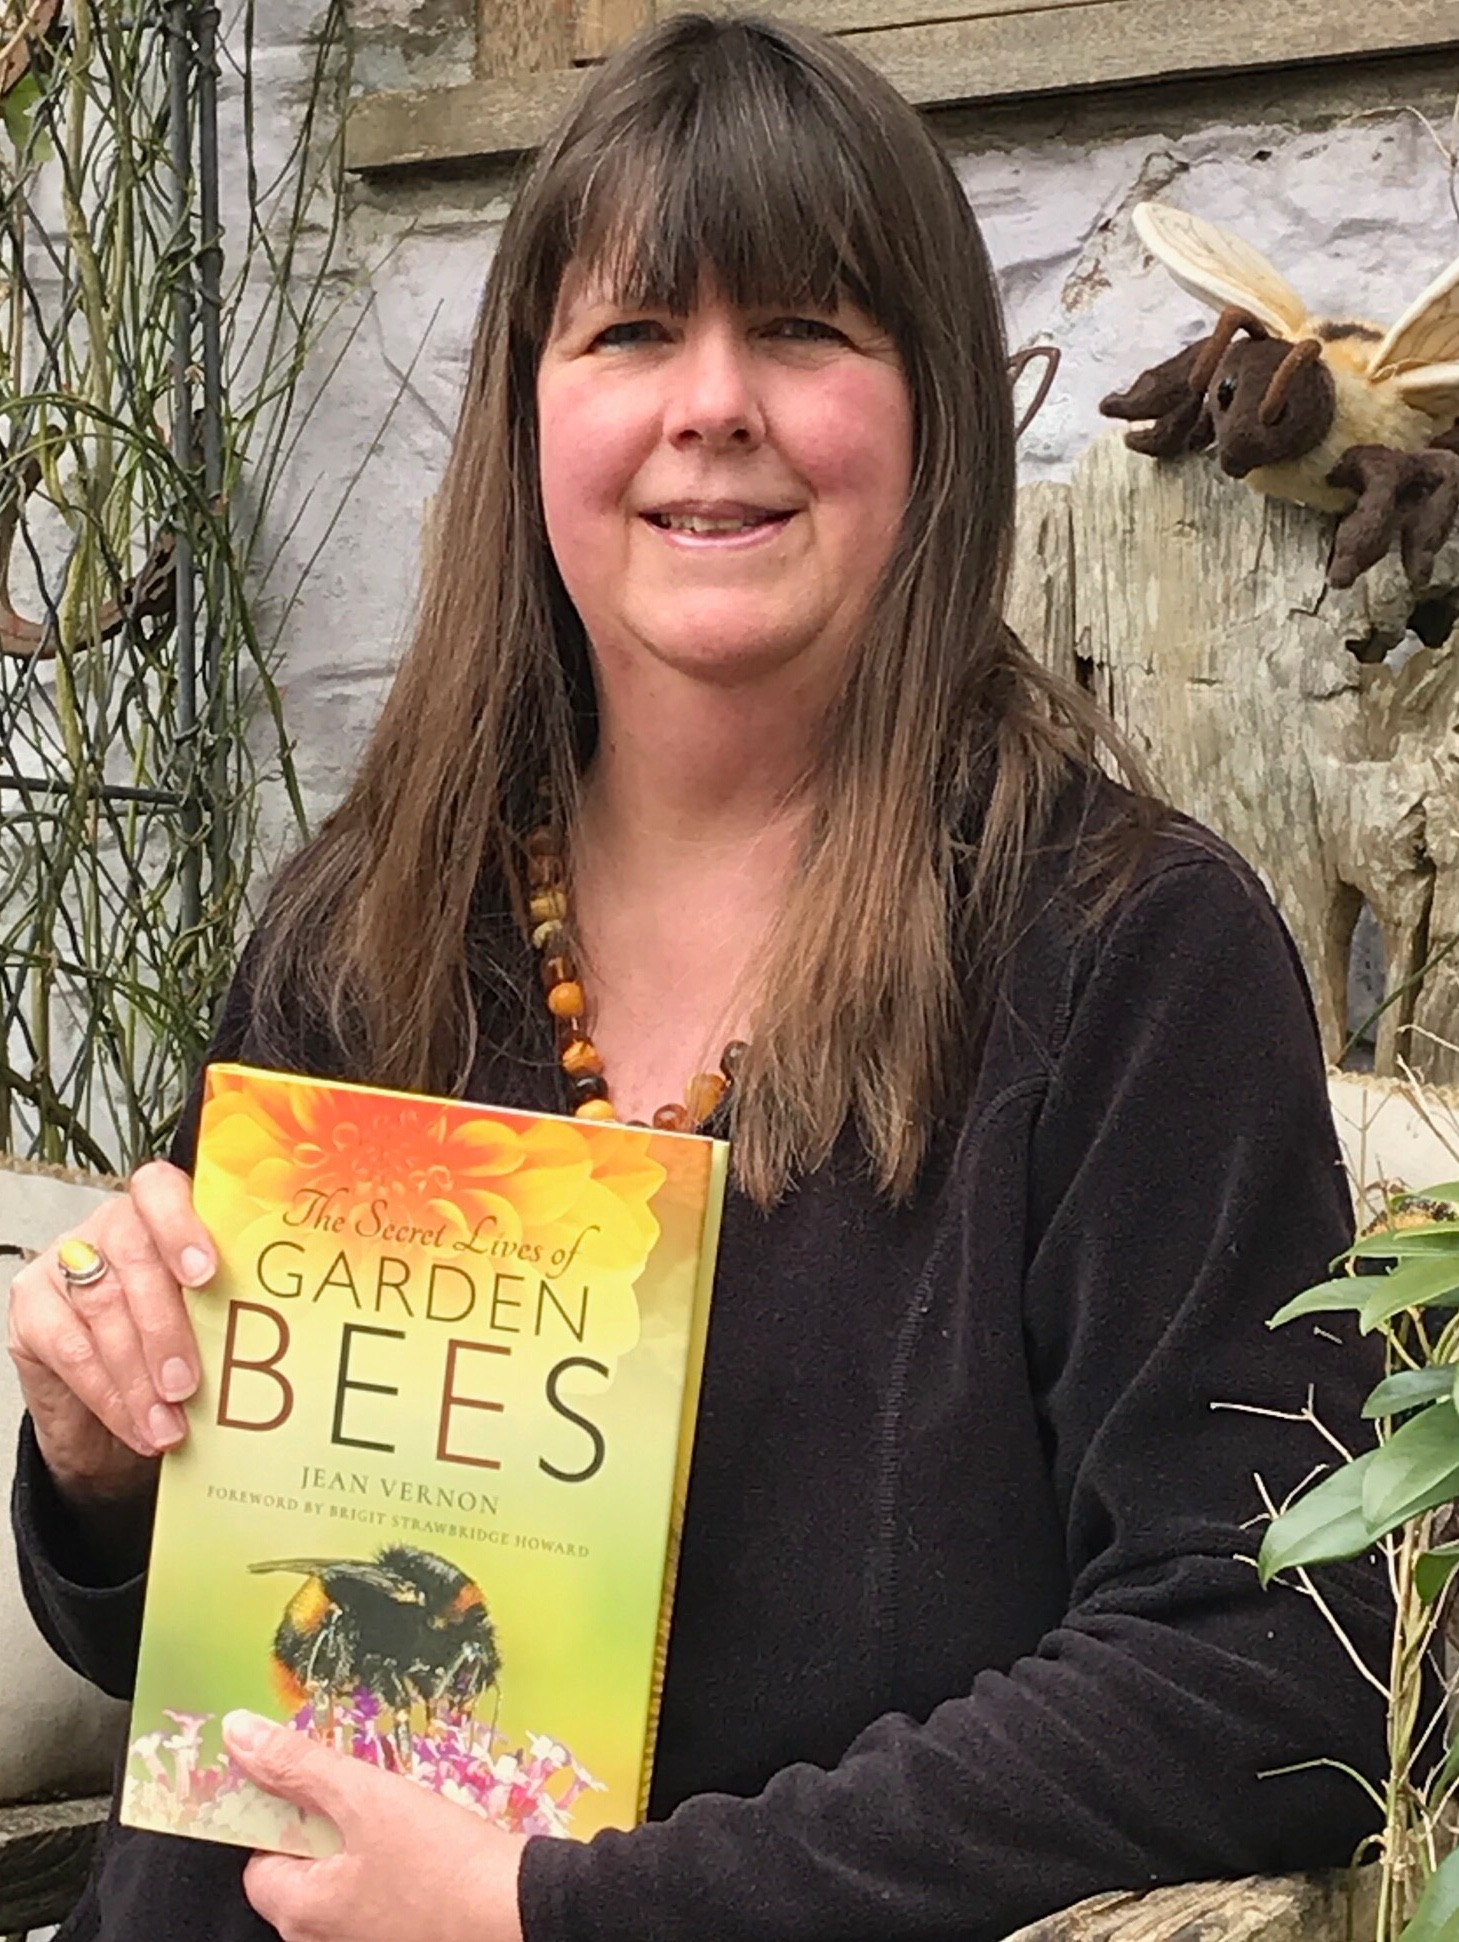 The Secret Live Of Garden Bees by Jean Vernon